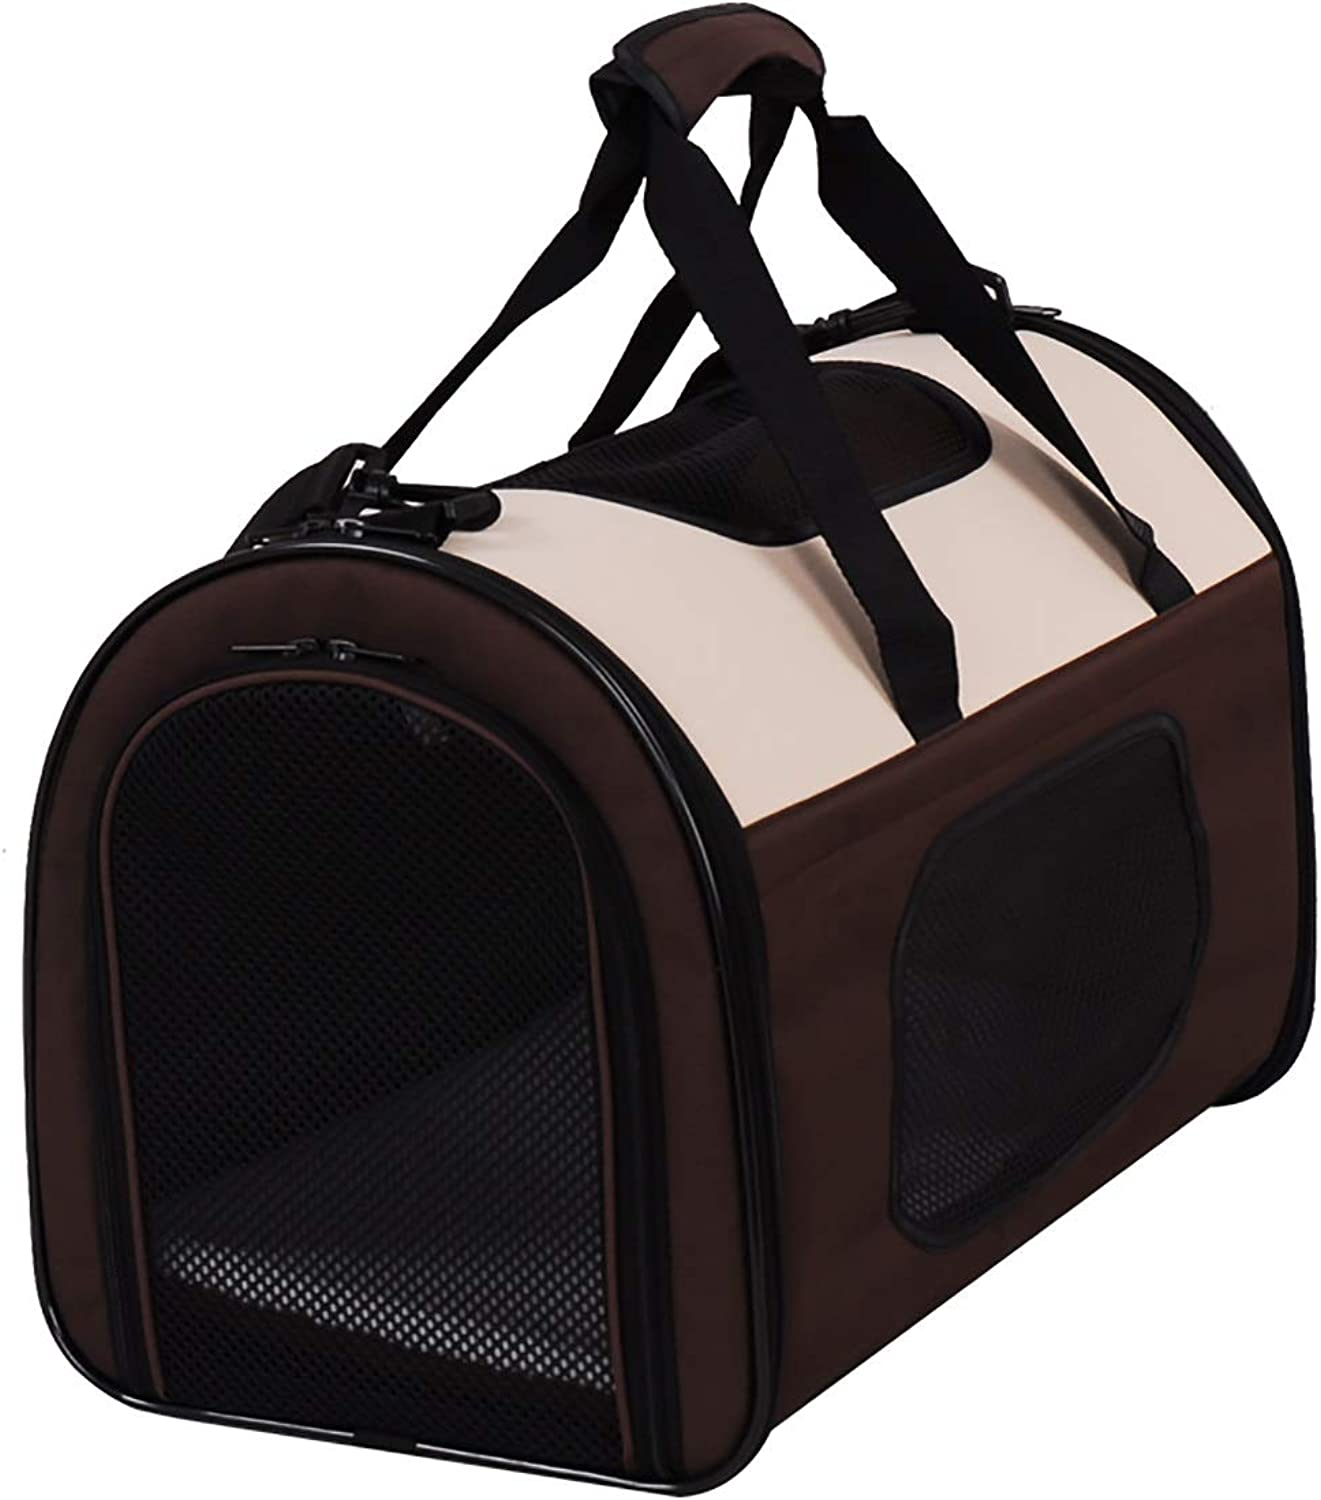 Onnear Cat and dog air pet carrier travel bag, comfortable portable collapsible pet bag airline for small dogs, cats and puppies (color   Brown, Size   M)